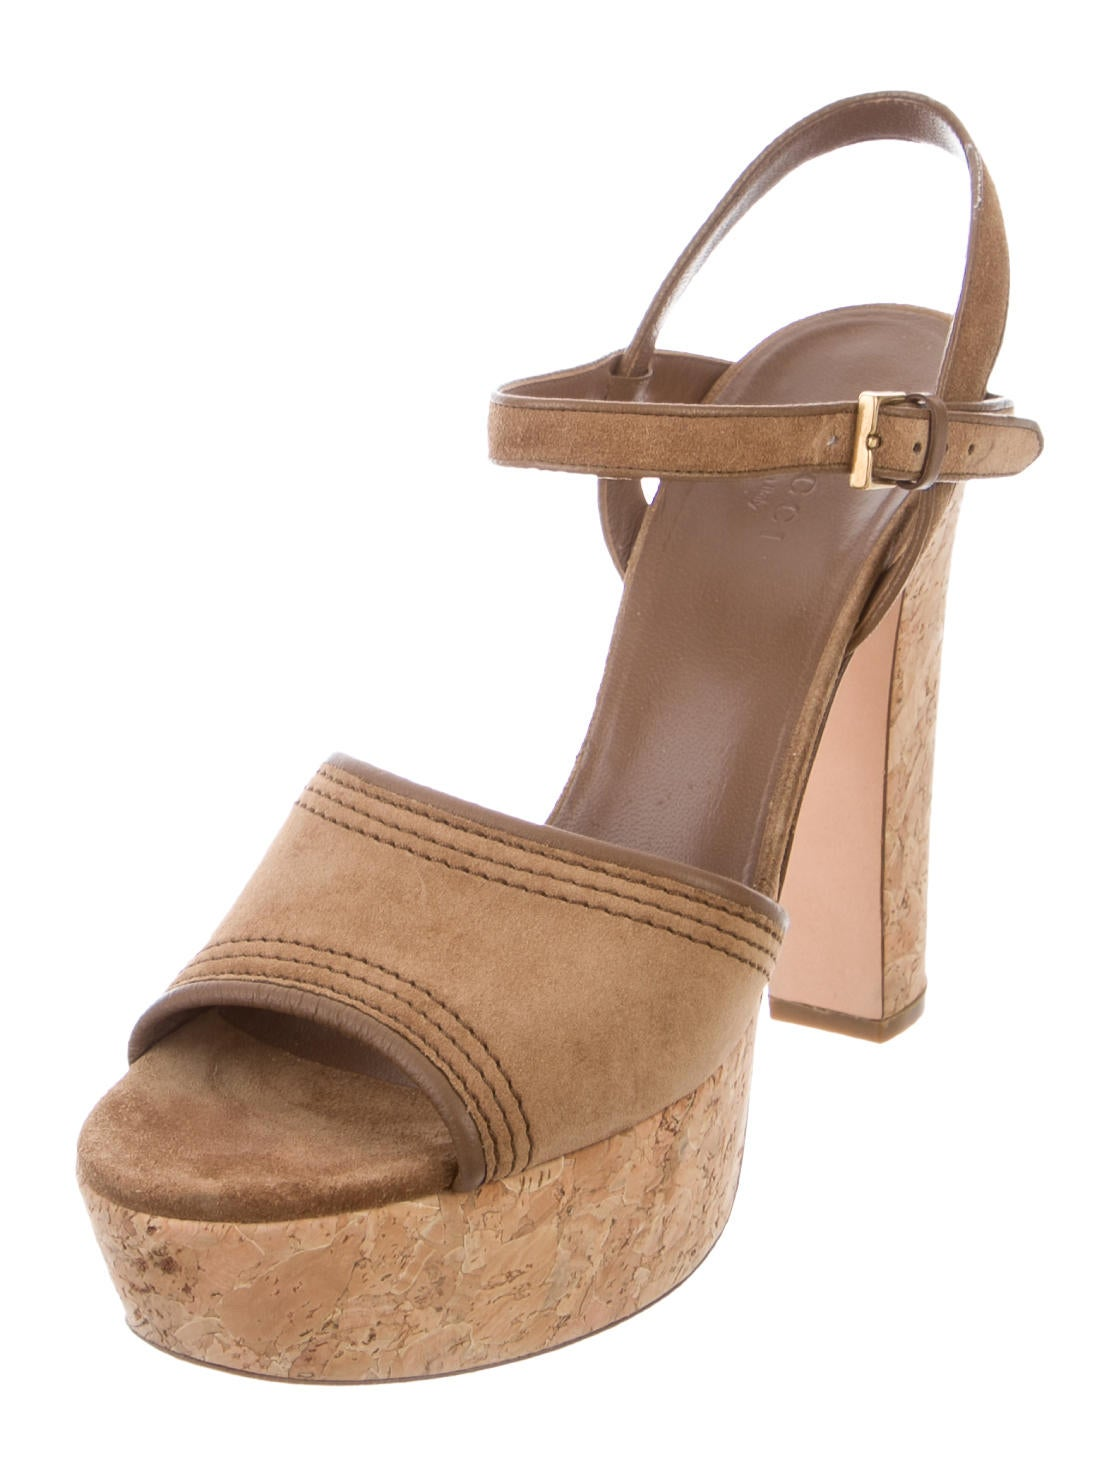 Free shipping on women's ankle strap sandals at optimizings.cf from the best brands including Steve Madden, Sam Edelman, Vince Camuto and more. Free shipping and returns.